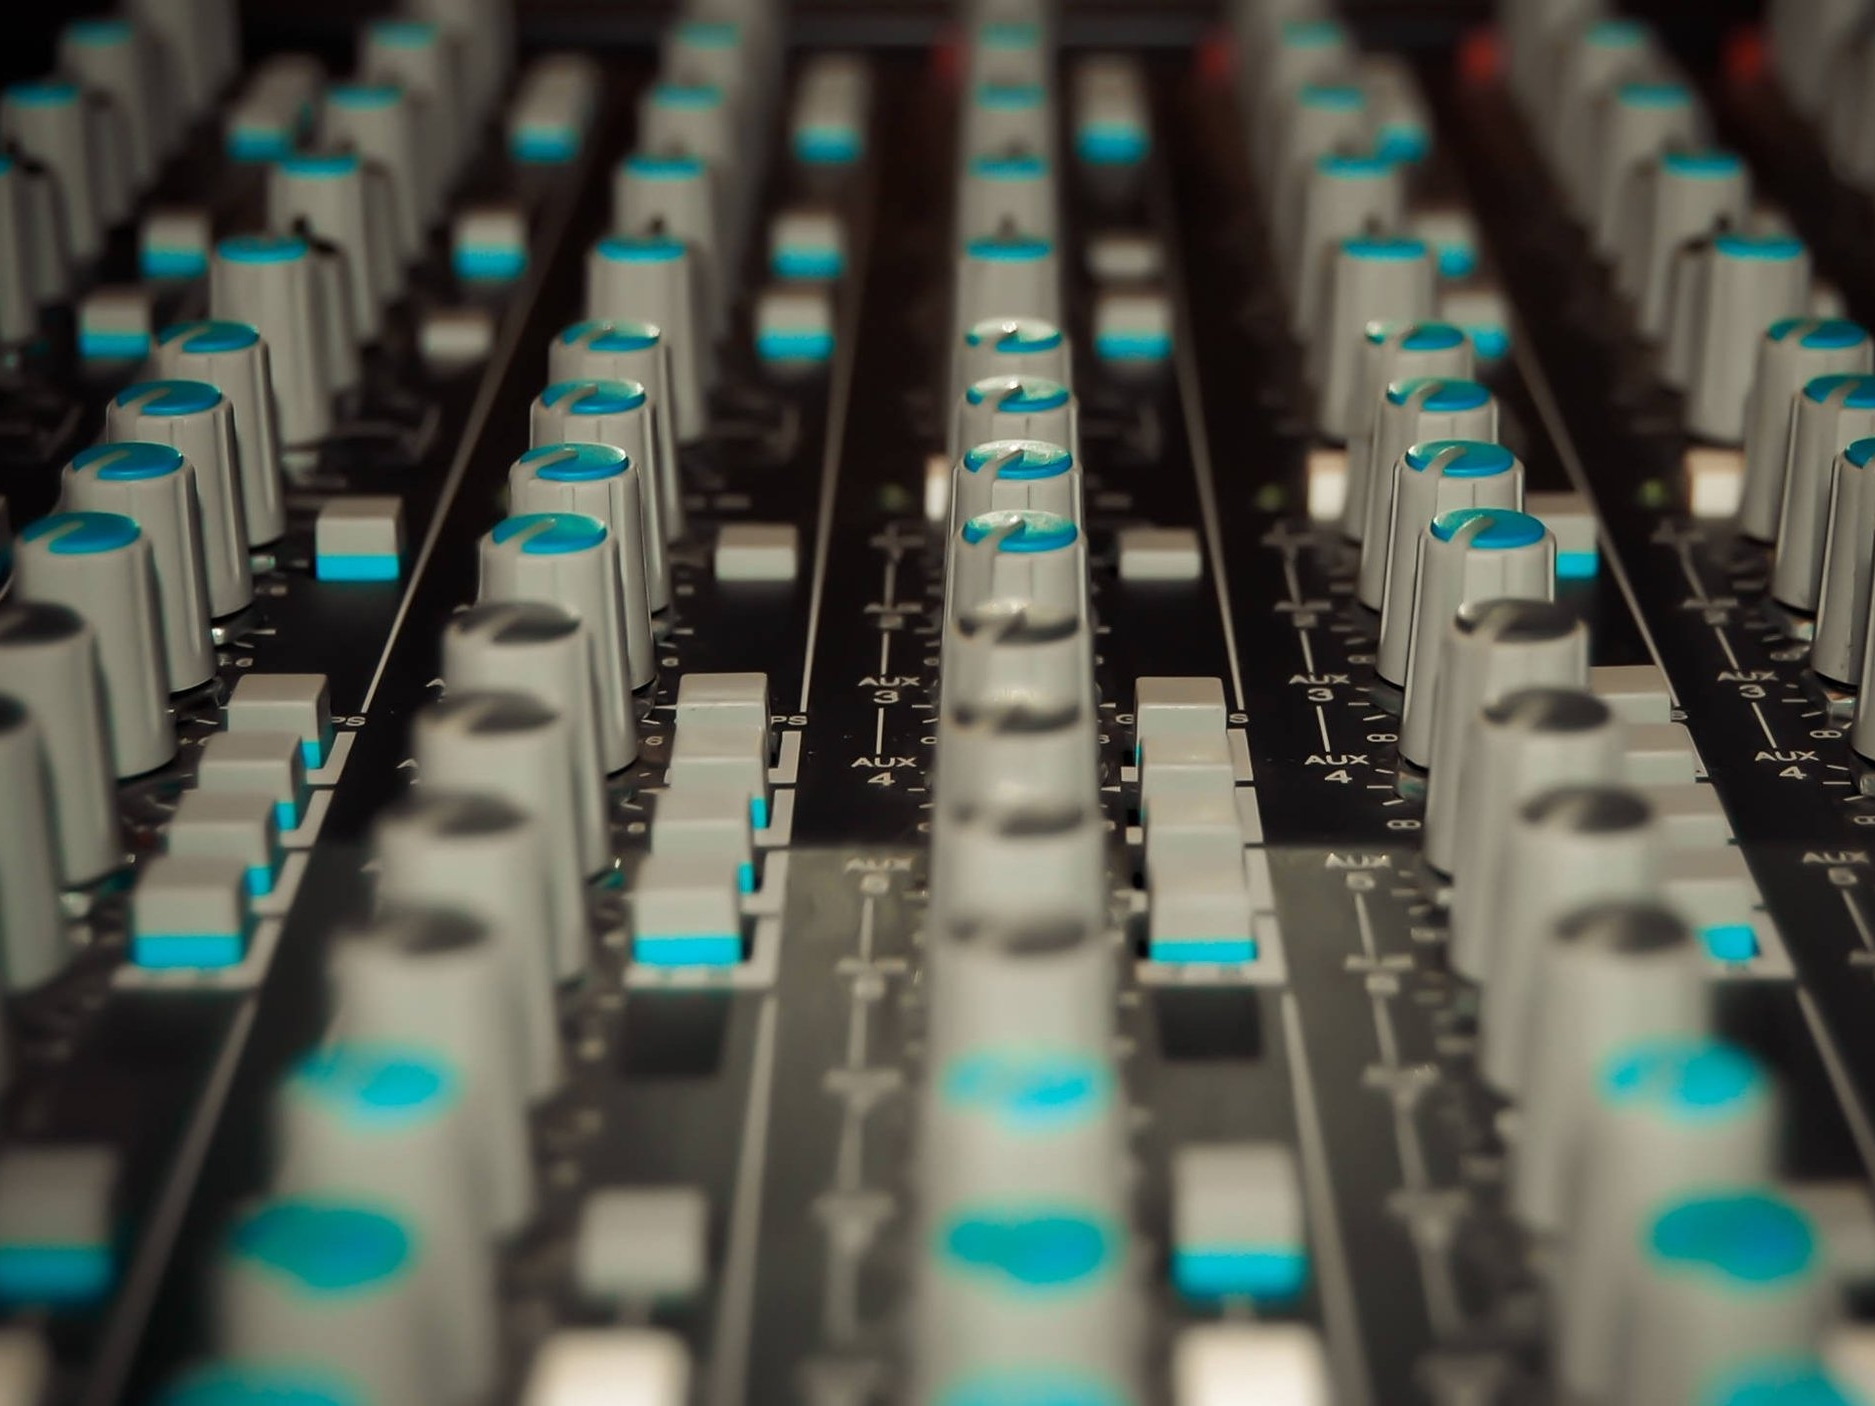 Parallel Processing - Push your knowledge of parallel signal routing even further, and make profound improvements to any mix in seconds.